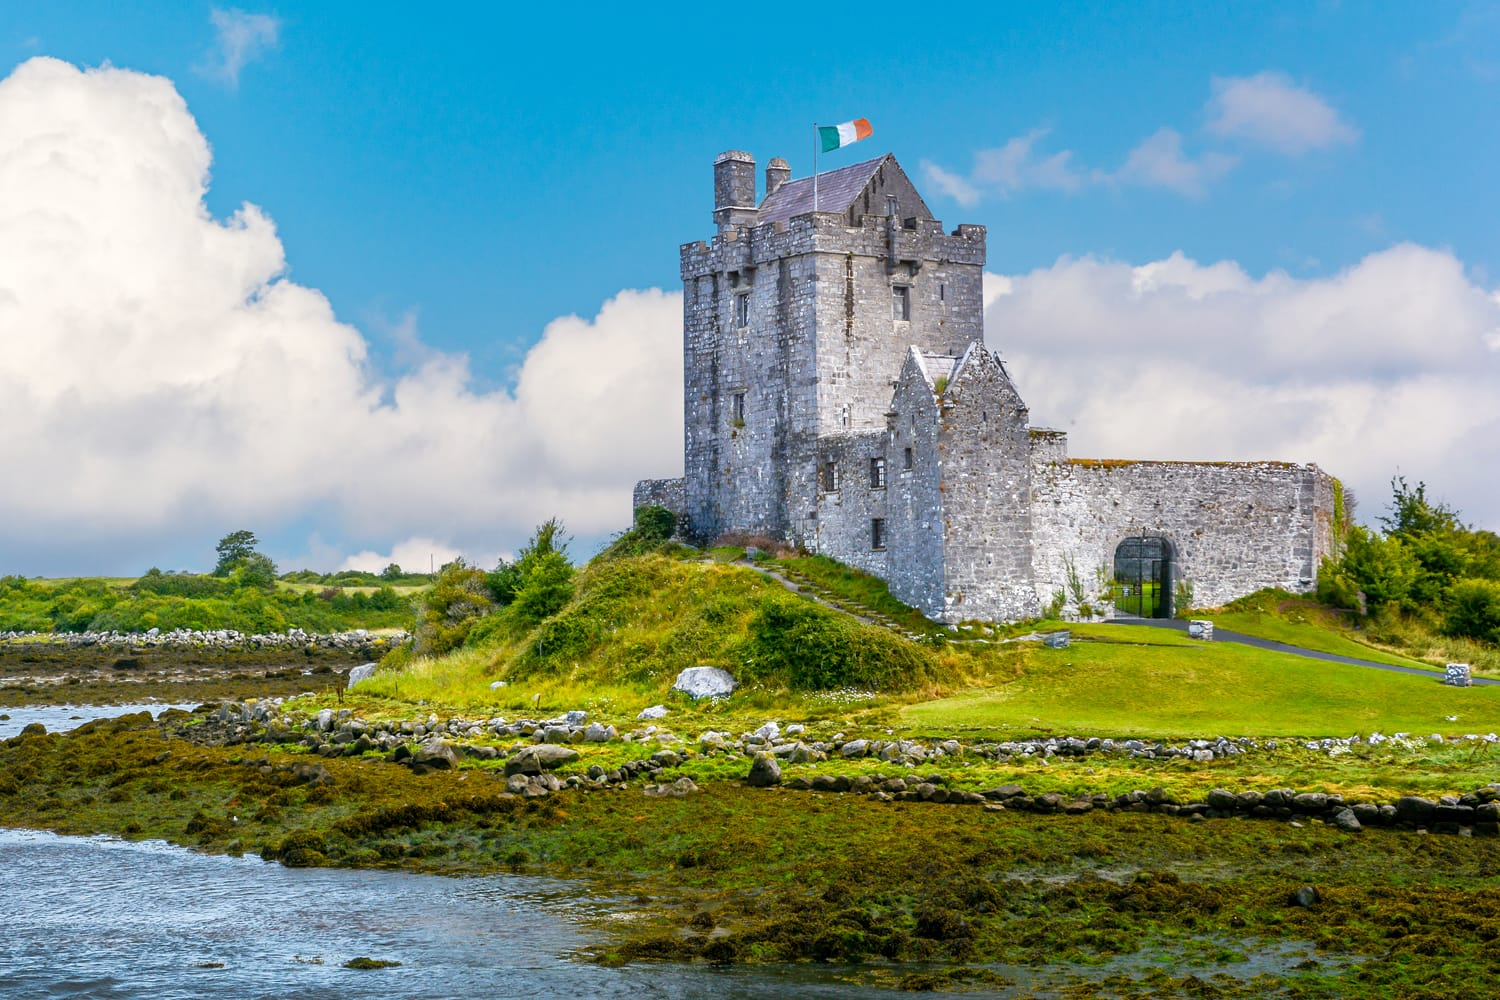 Dunguaire Castle, 16th-century tower house in County Galway near Kinvarra, Ireland